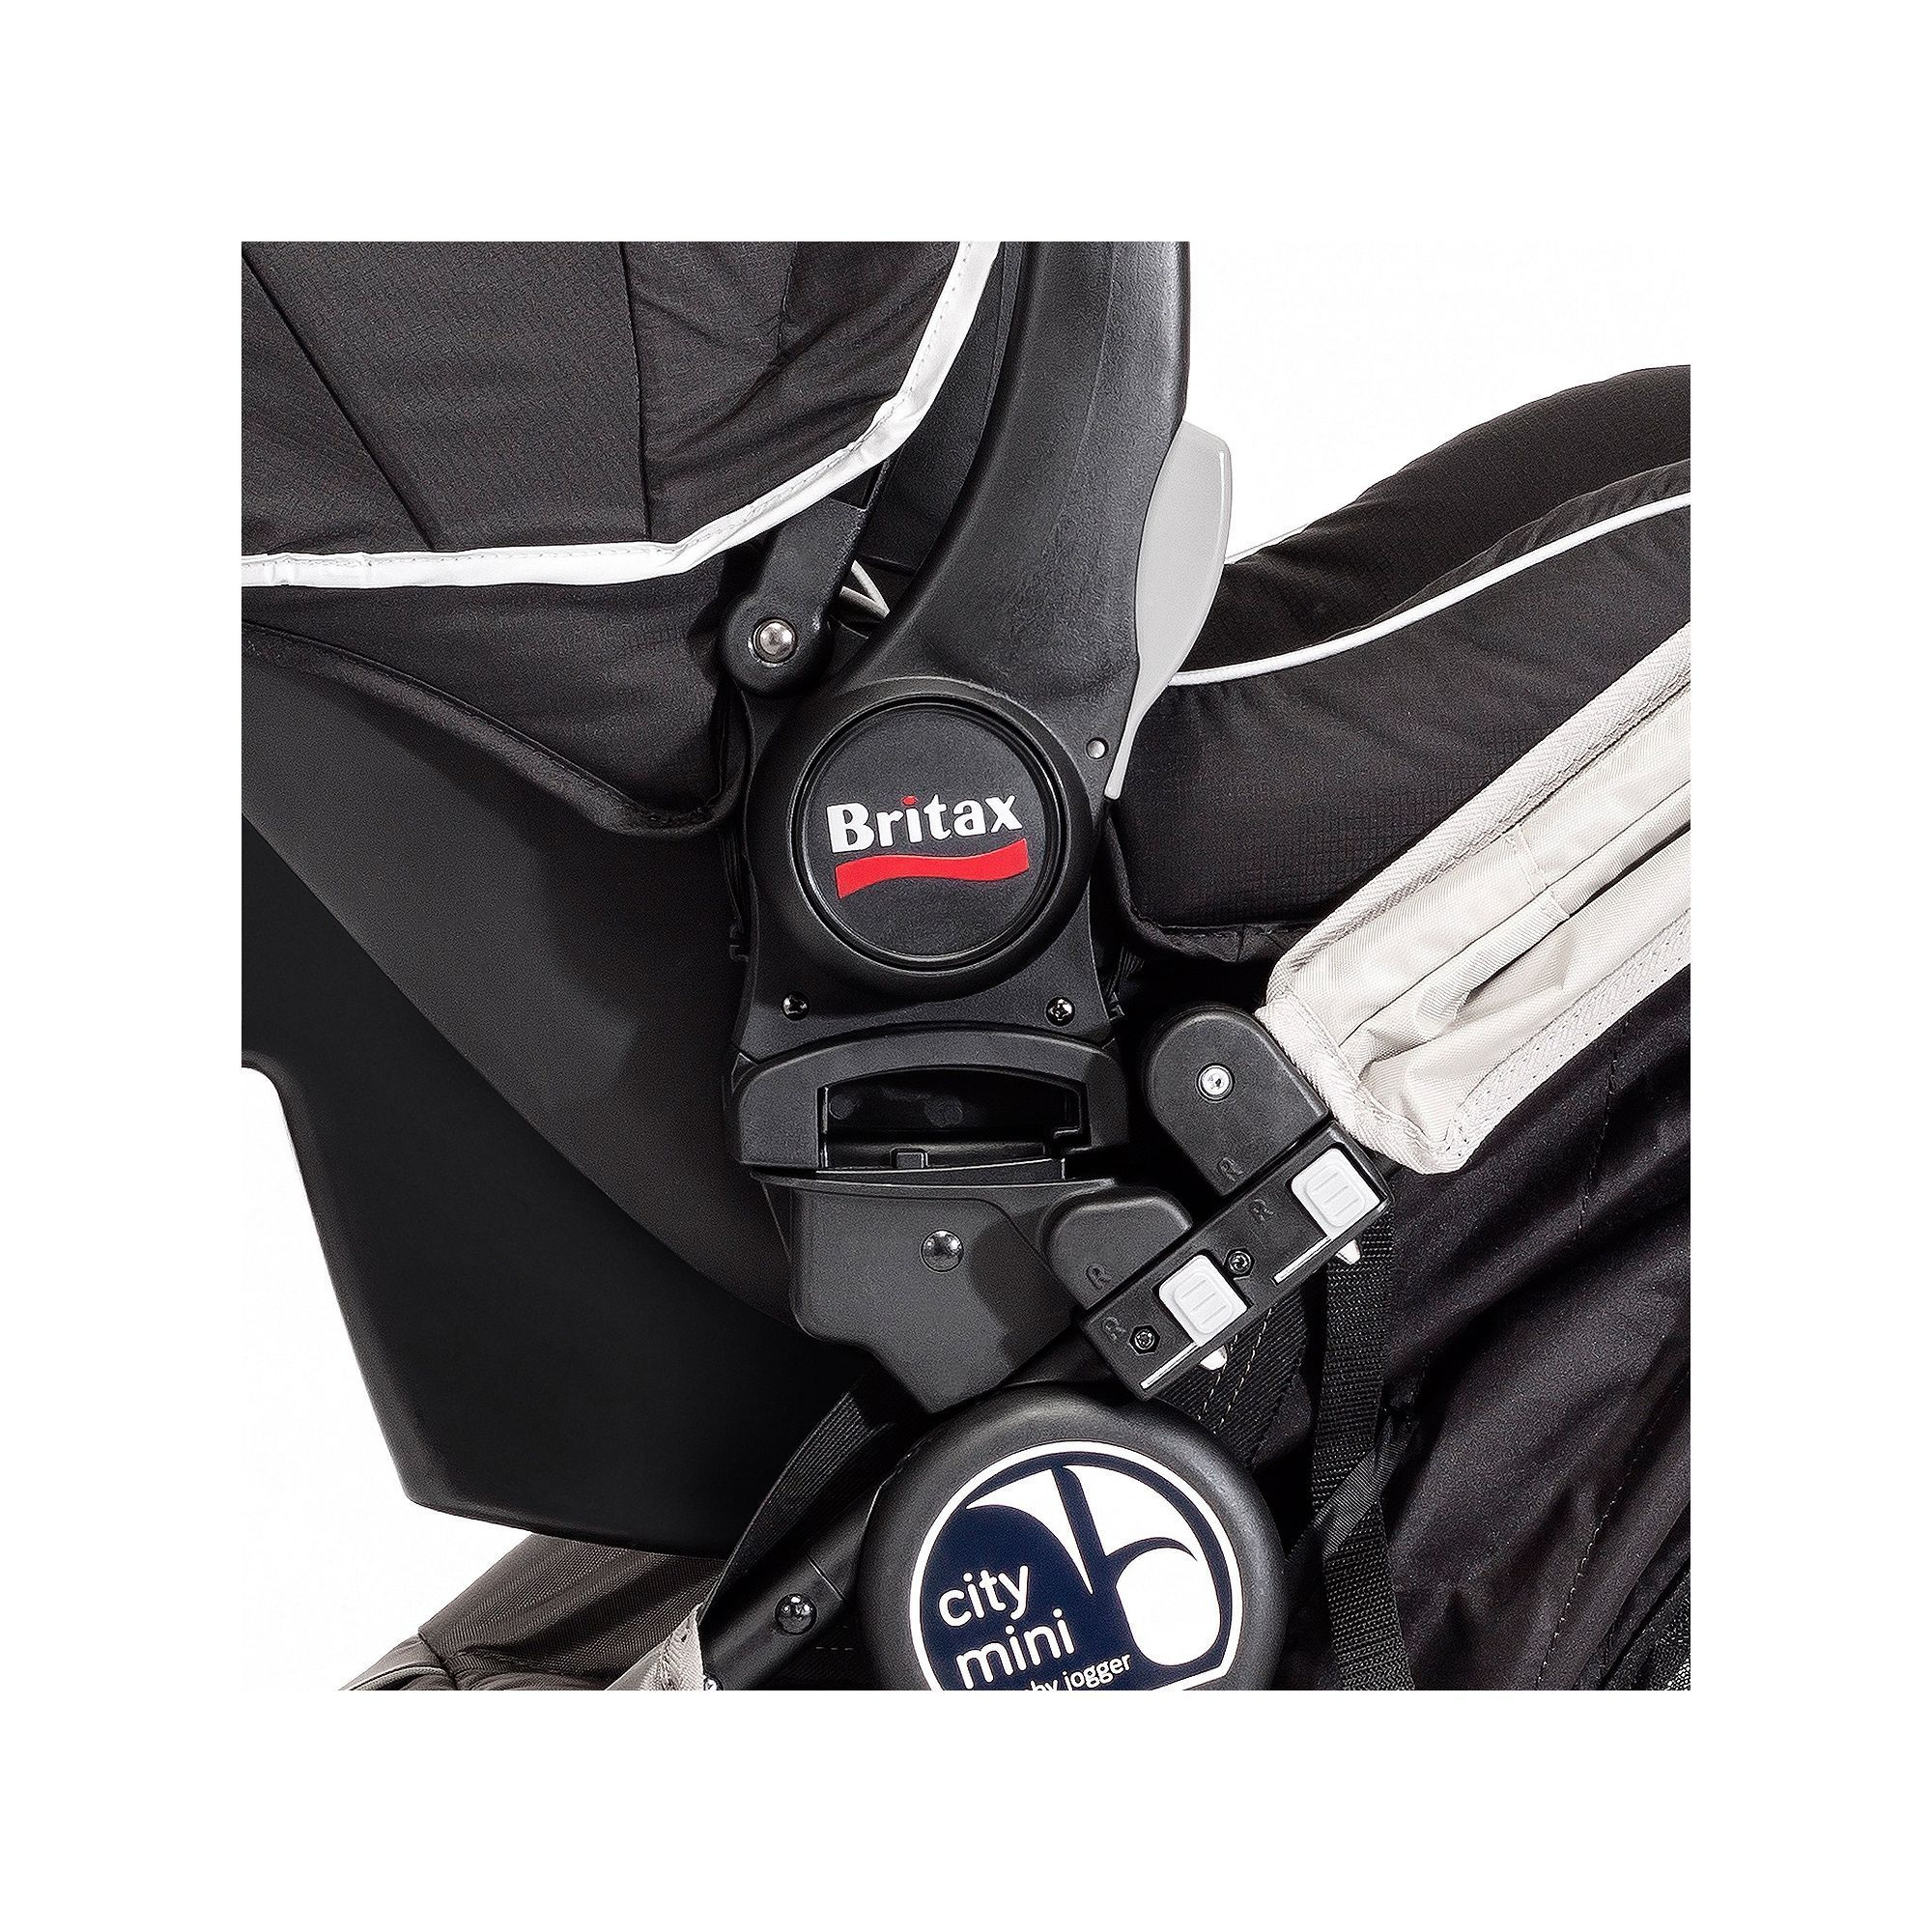 Britax/BOB Single Car Seat Adapter for Baby Jogger City